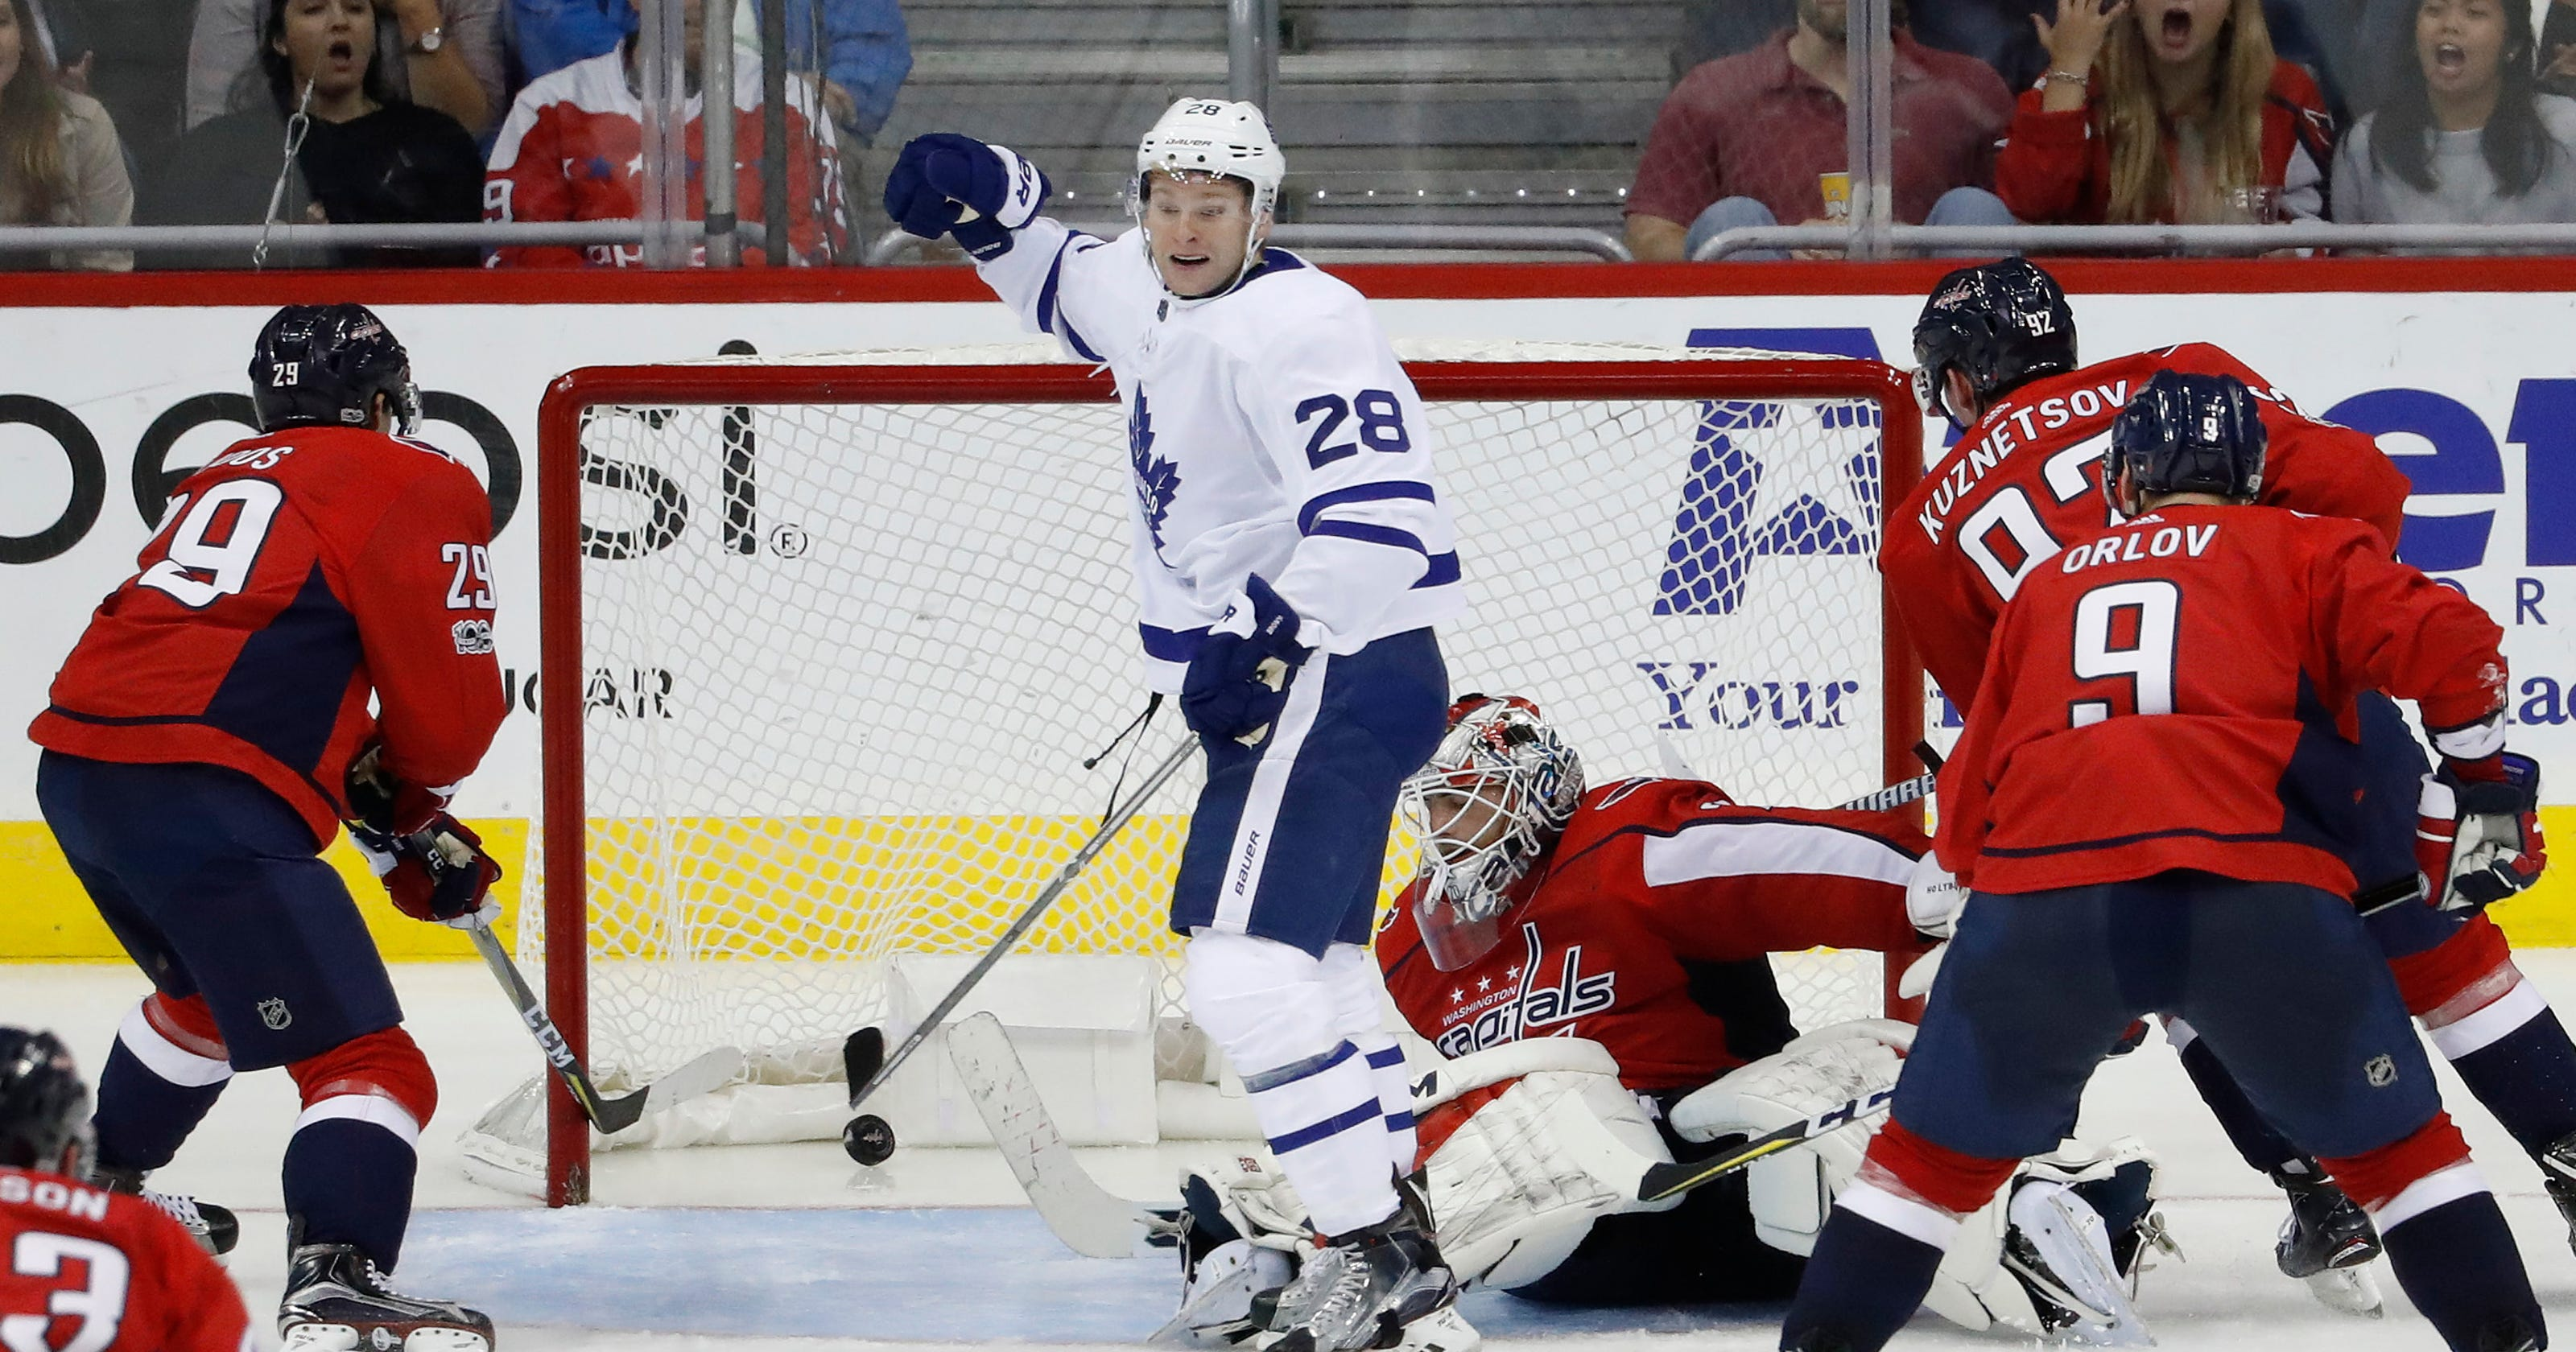 636ef58e457 Maple Leafs shut out Capitals in playoff rematch